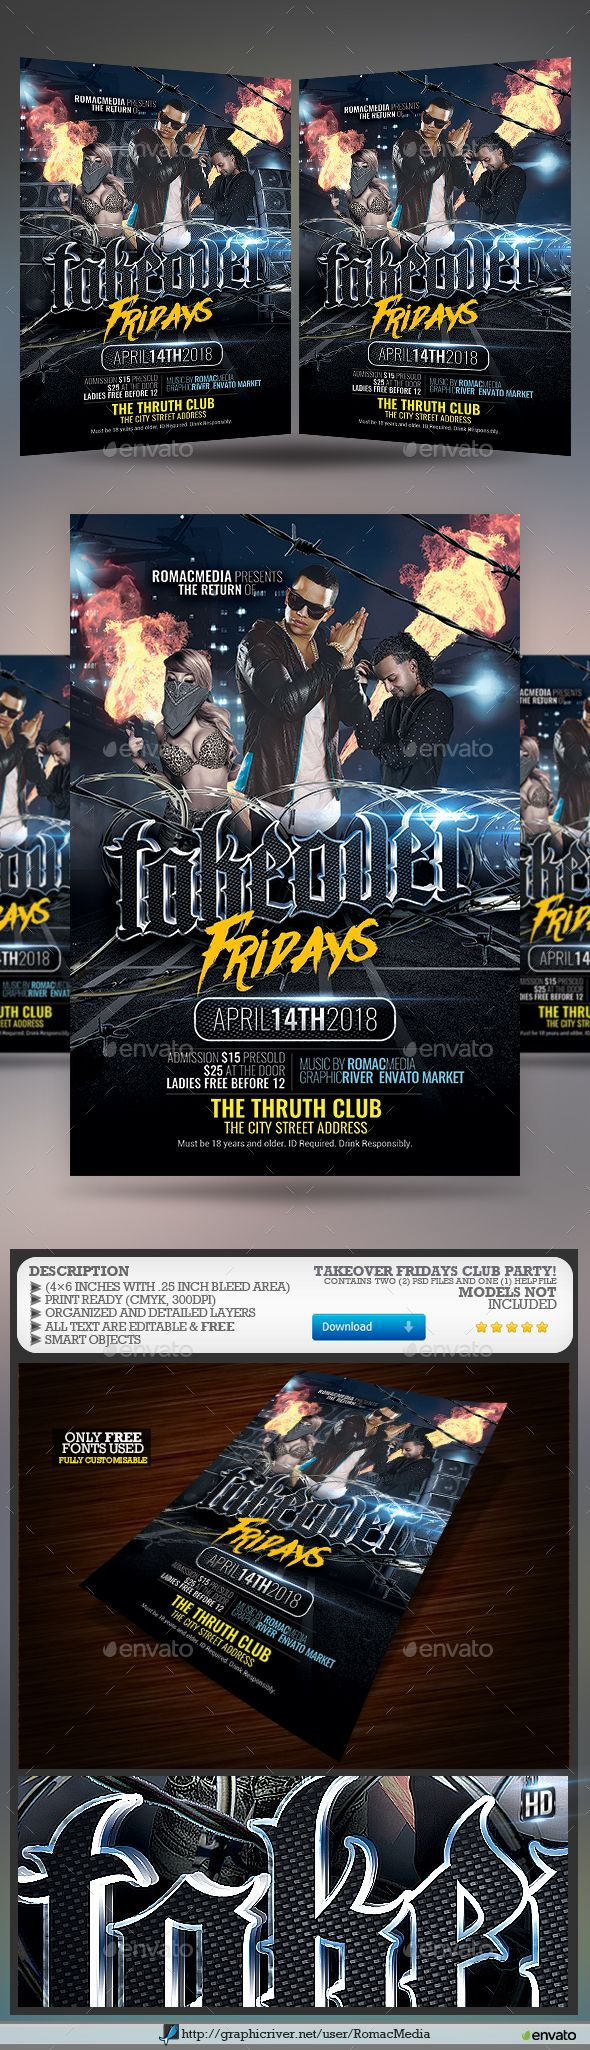 takeover rap flyer fonts logos icons pinterest flyer template